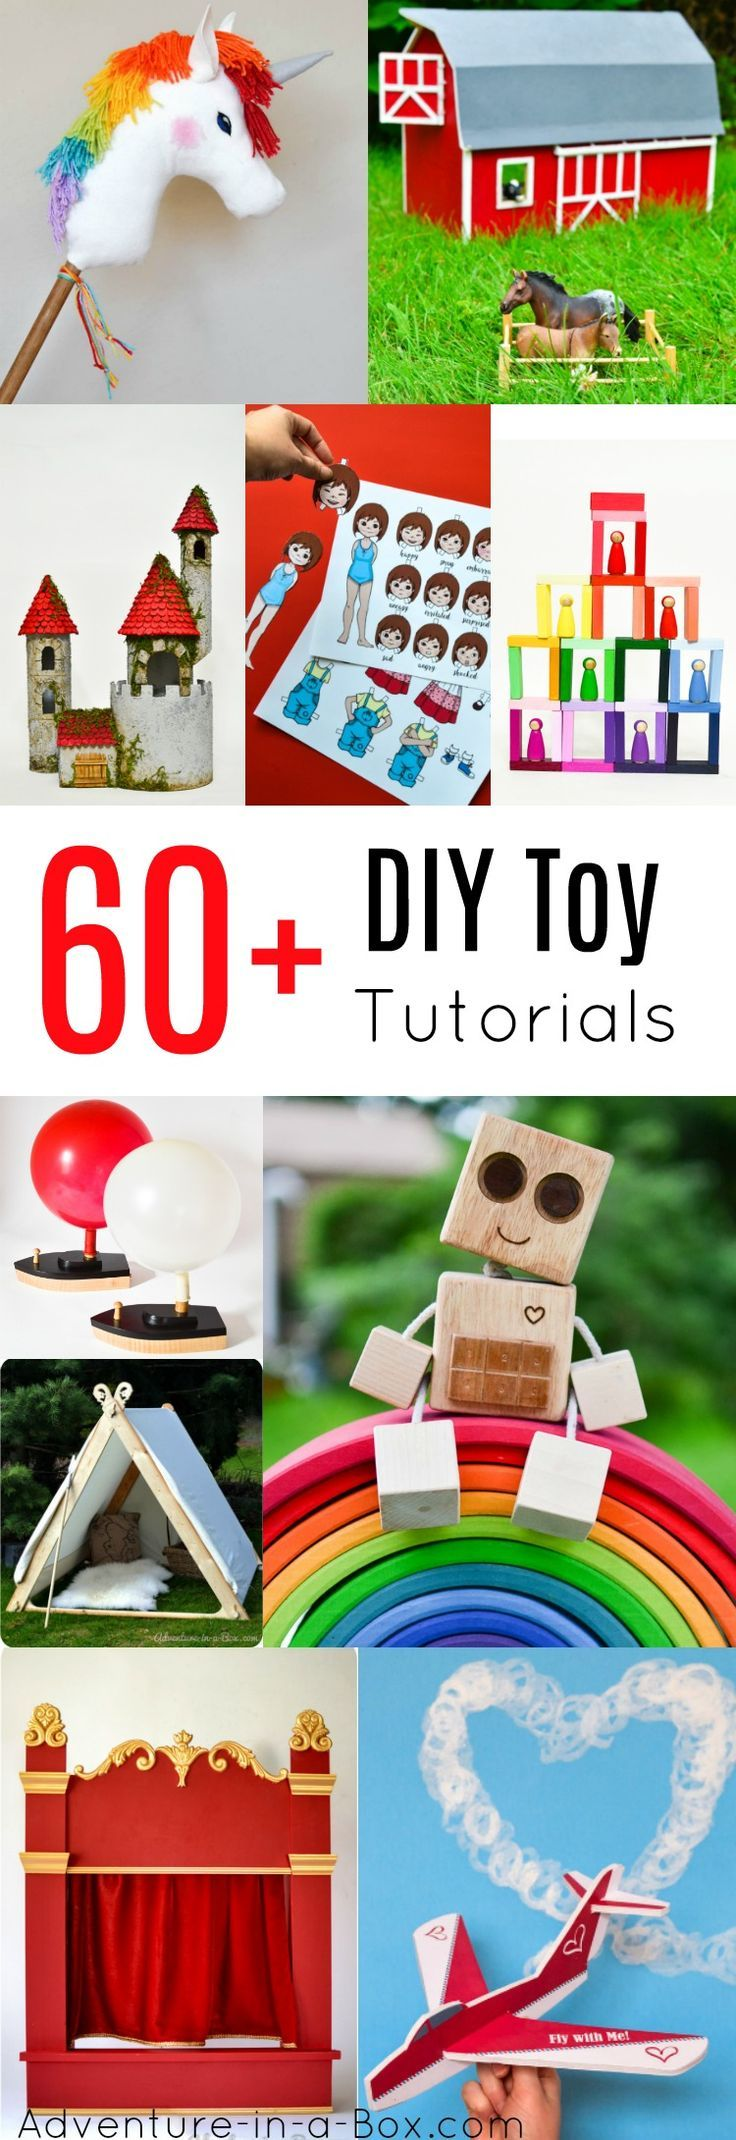 BEST HANDMADE TOYS TO MAKE FOR KIDS #handmadetoys